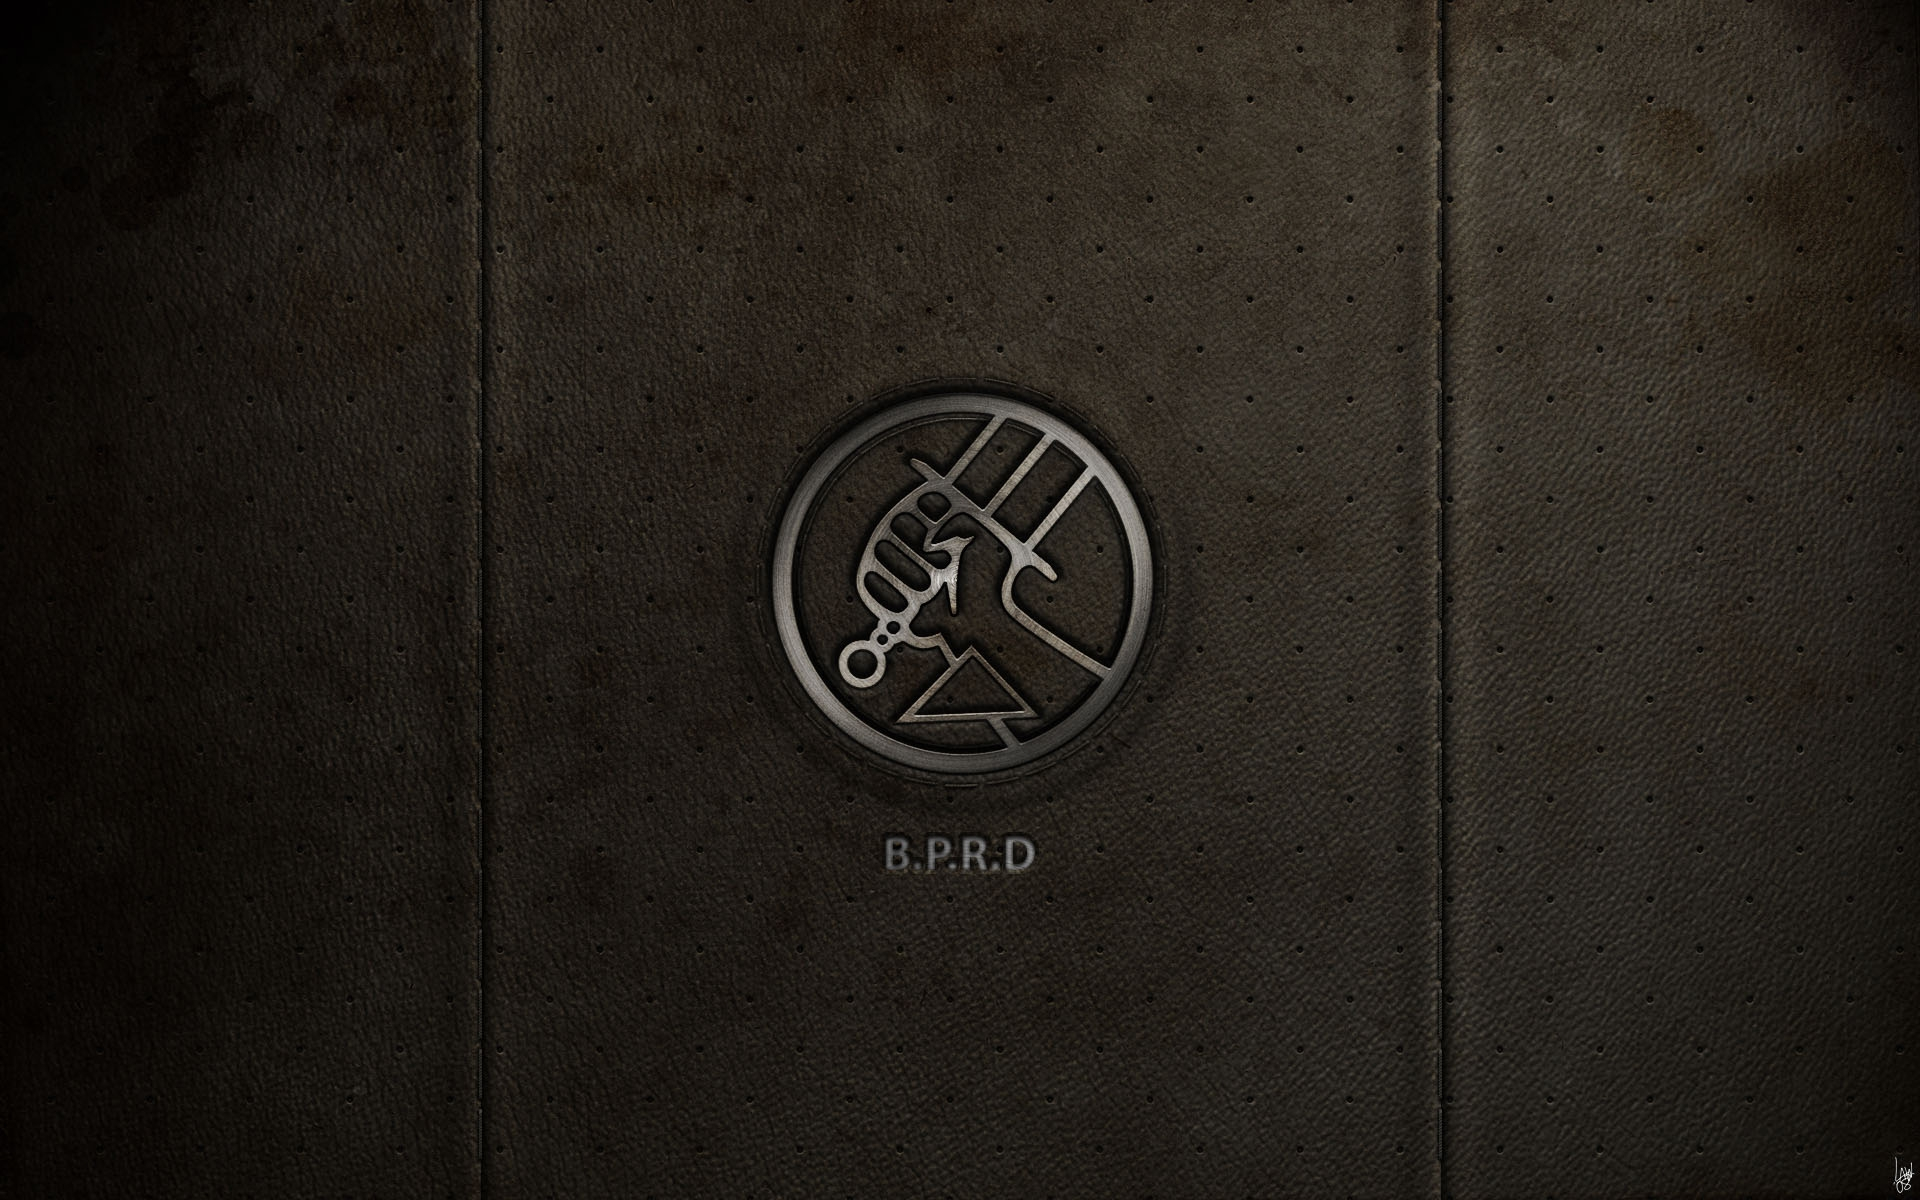 BPRD on Leather